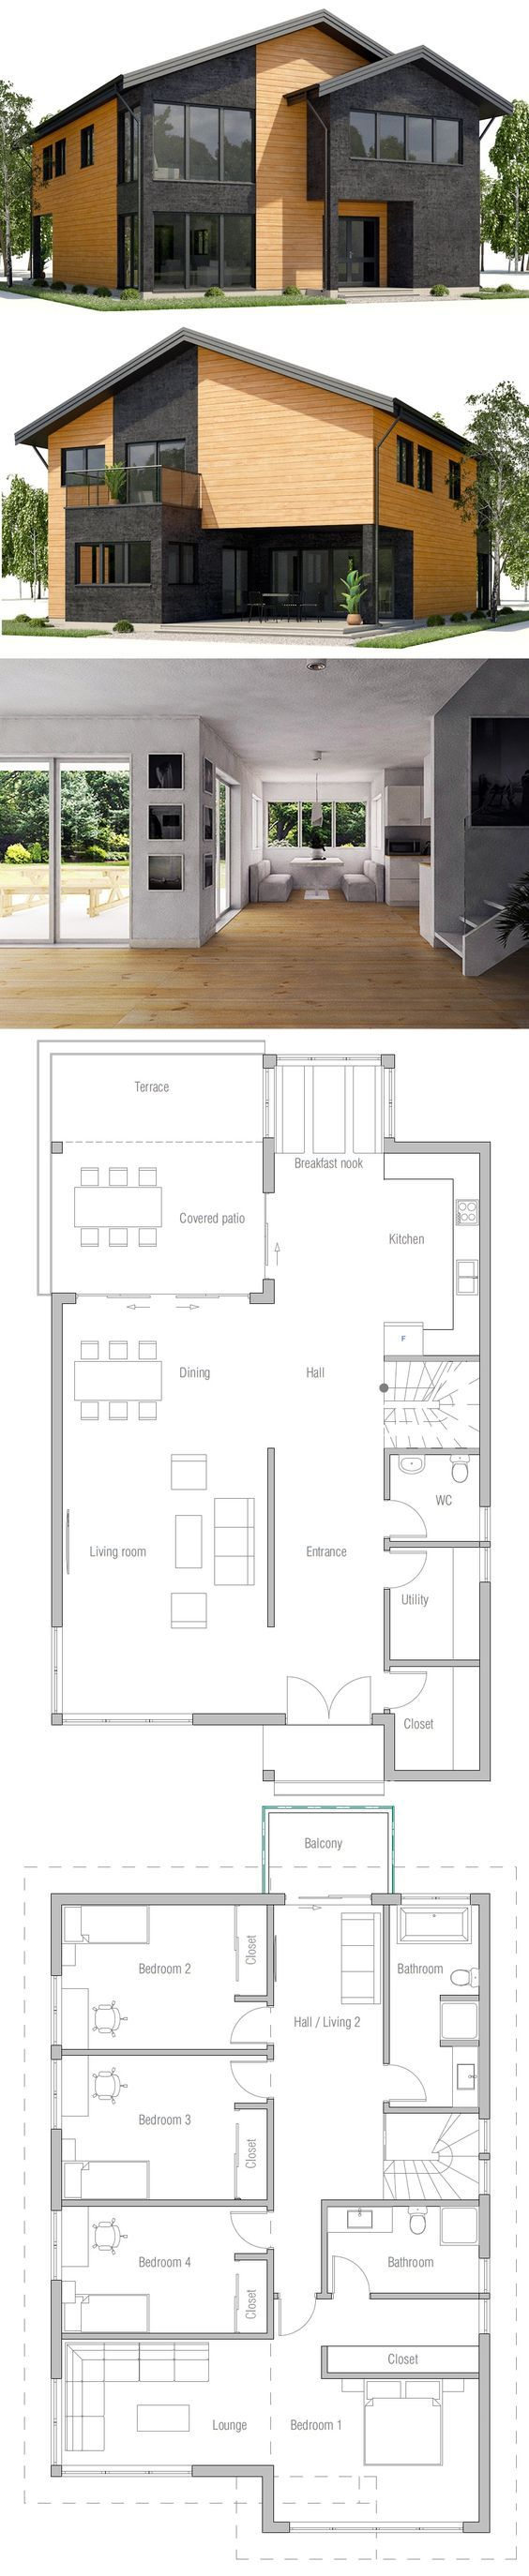 684 Best Beach House Images On Pinterest Decks Backyard Ideas And Jazzy Scooter Wiring Diagram Free Picture Schematic Plan